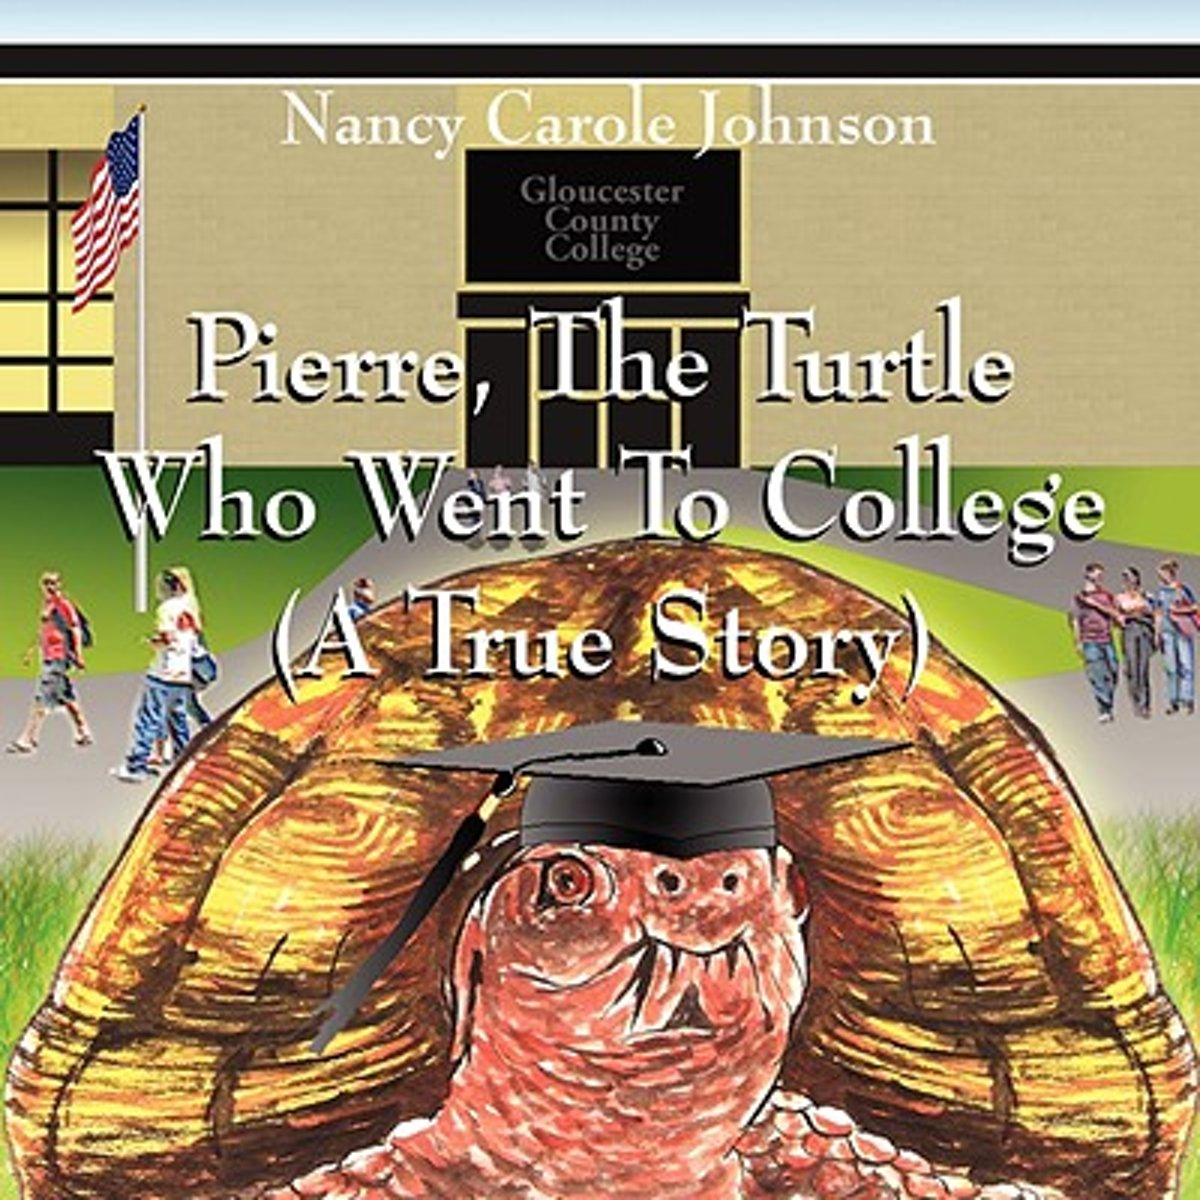 Pierre, the Turtle Who Went to College (a True Story)